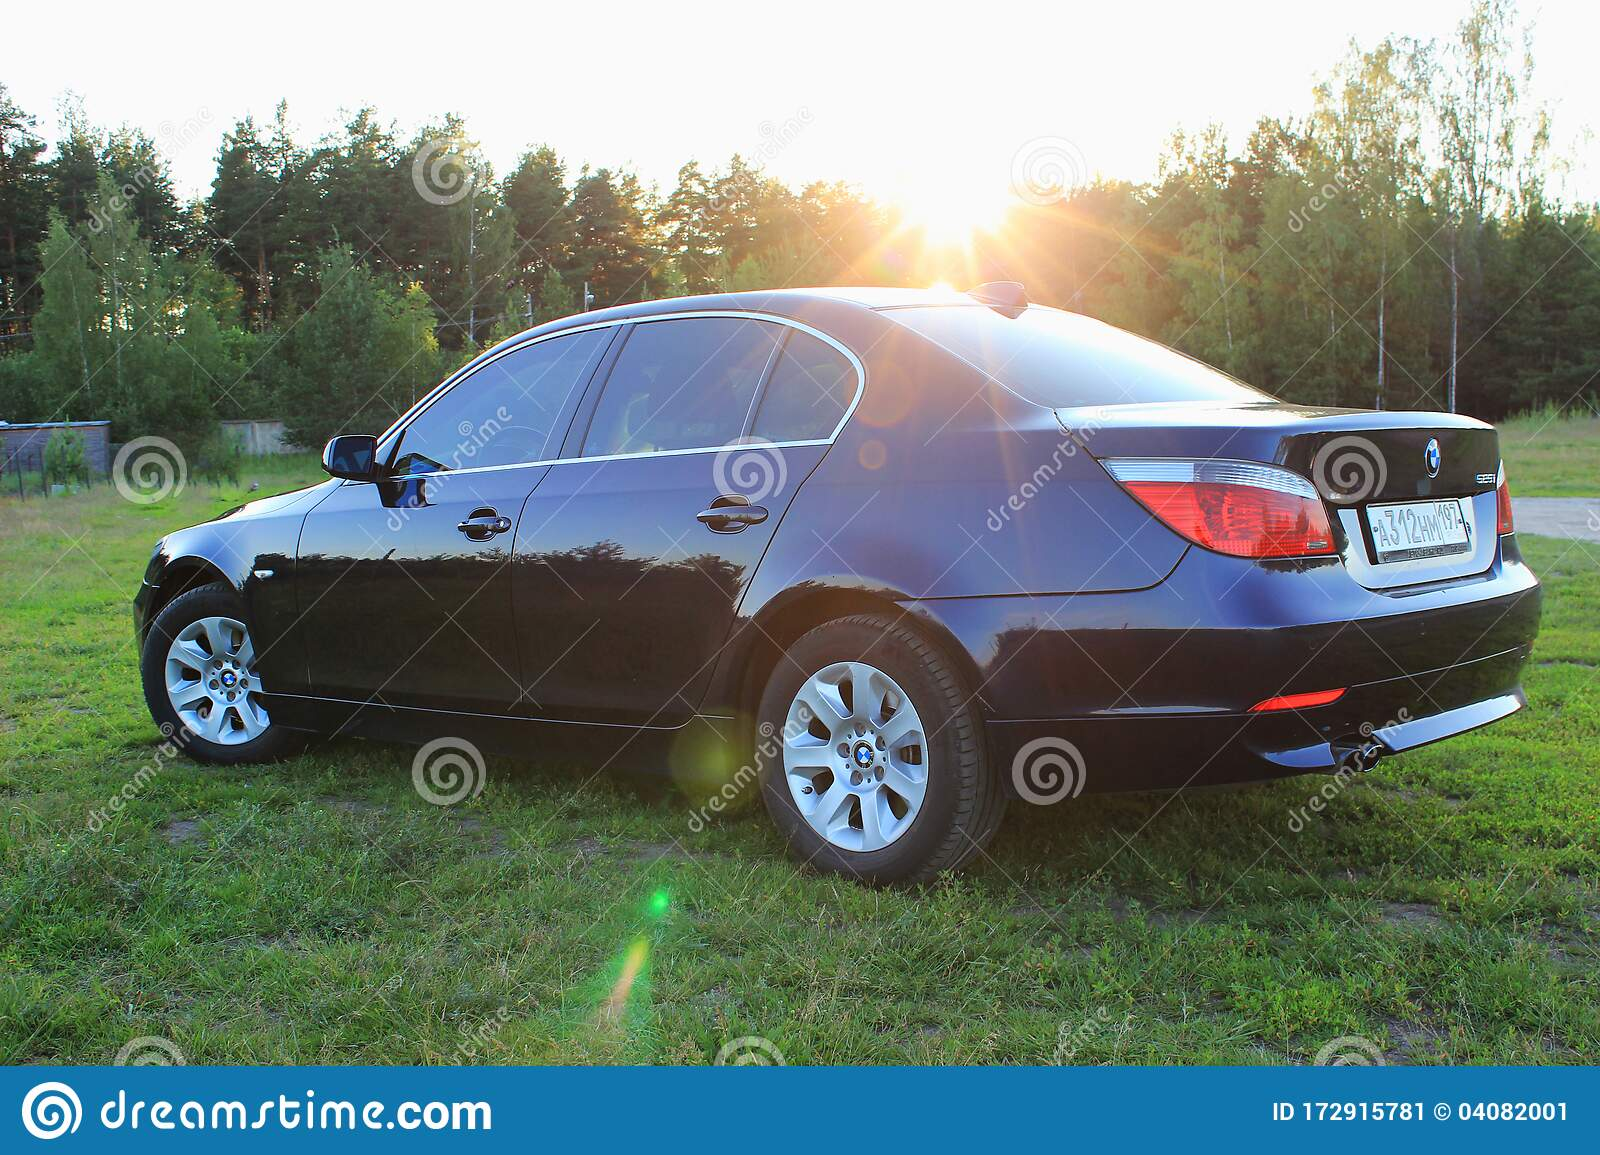 Dark Blue Bmw 5 Series E60 On A Sunny Summer Day In A Clearing With Green Grass Editorial Photo Image Of Retro Automotive 172915781